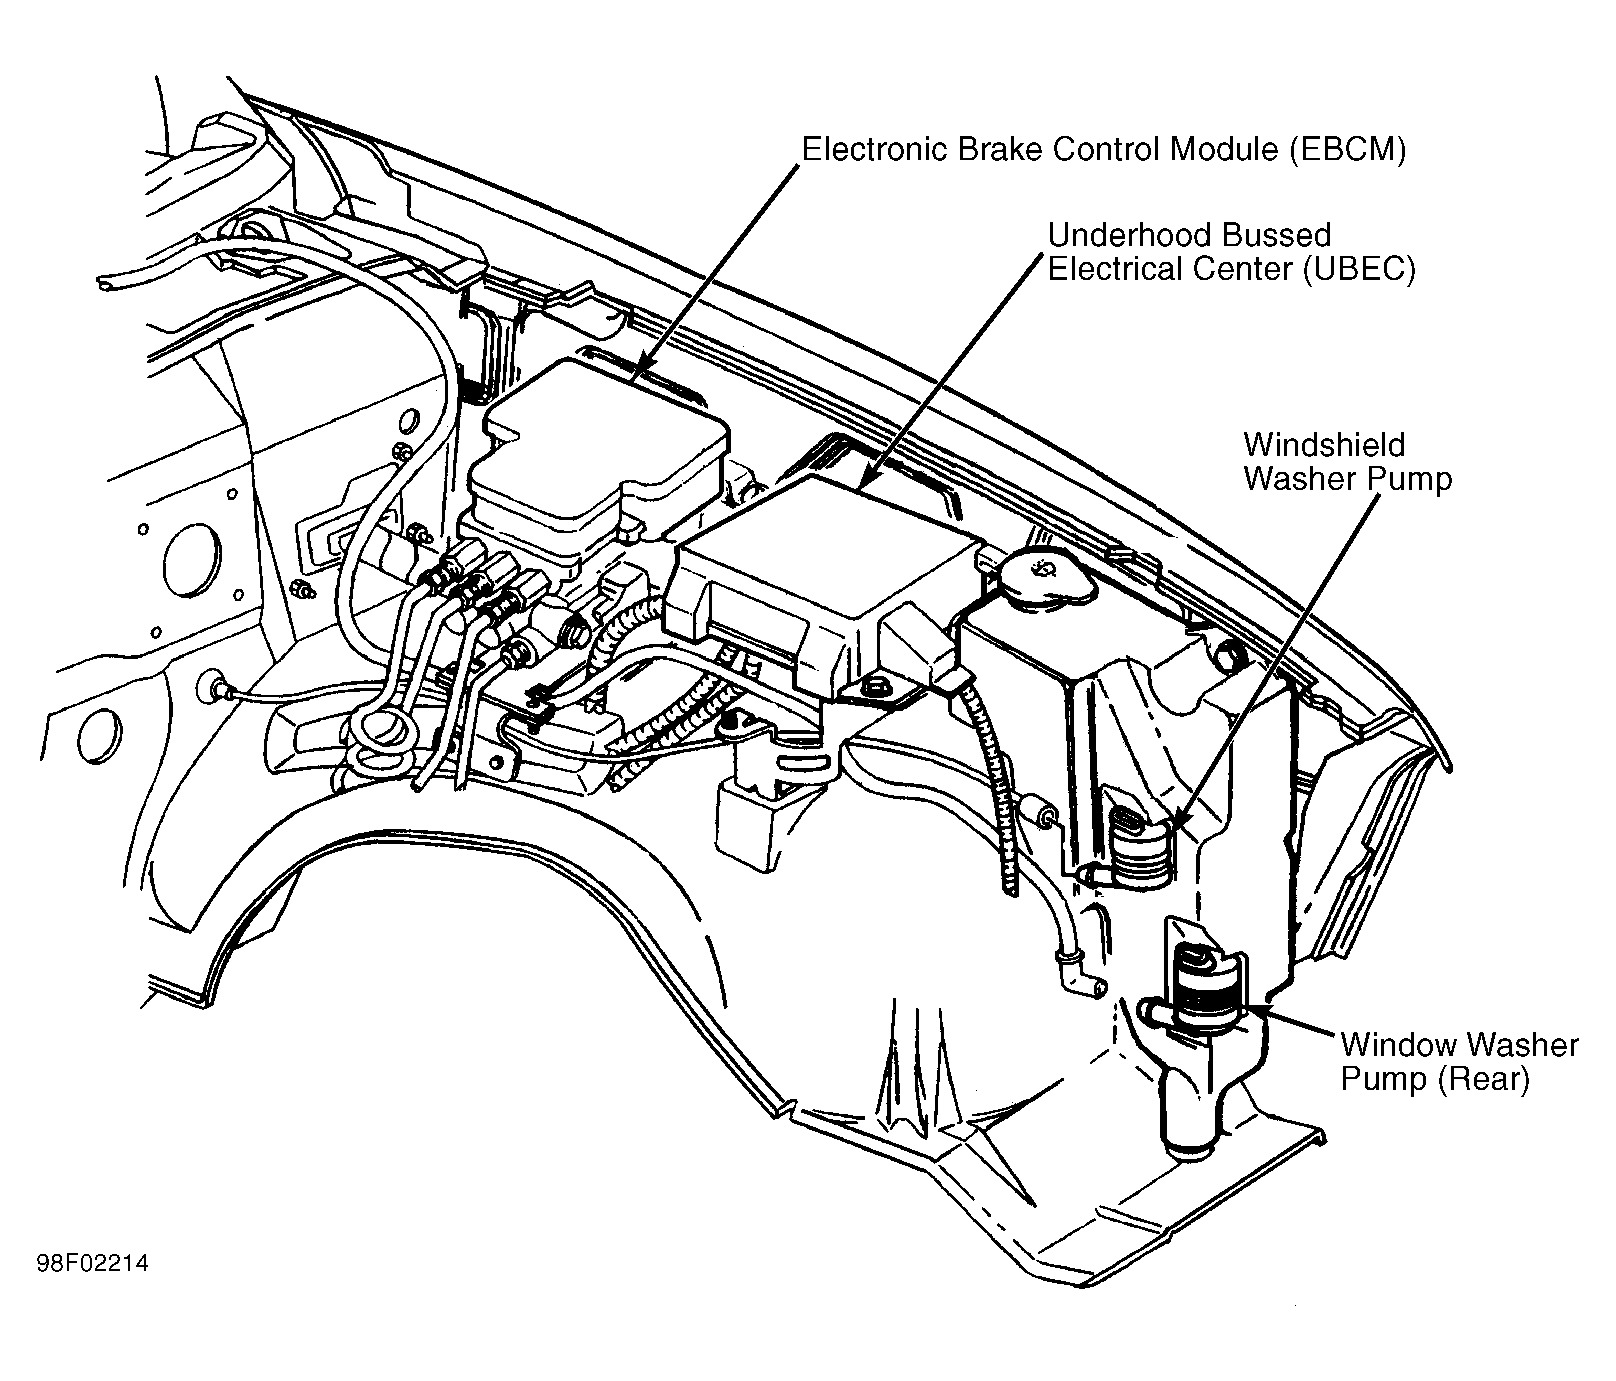 2004 Gmc Sonoma Engine Diagram Wiring Diagram Thick Alternator Thick Alternator Lasuiteclub It